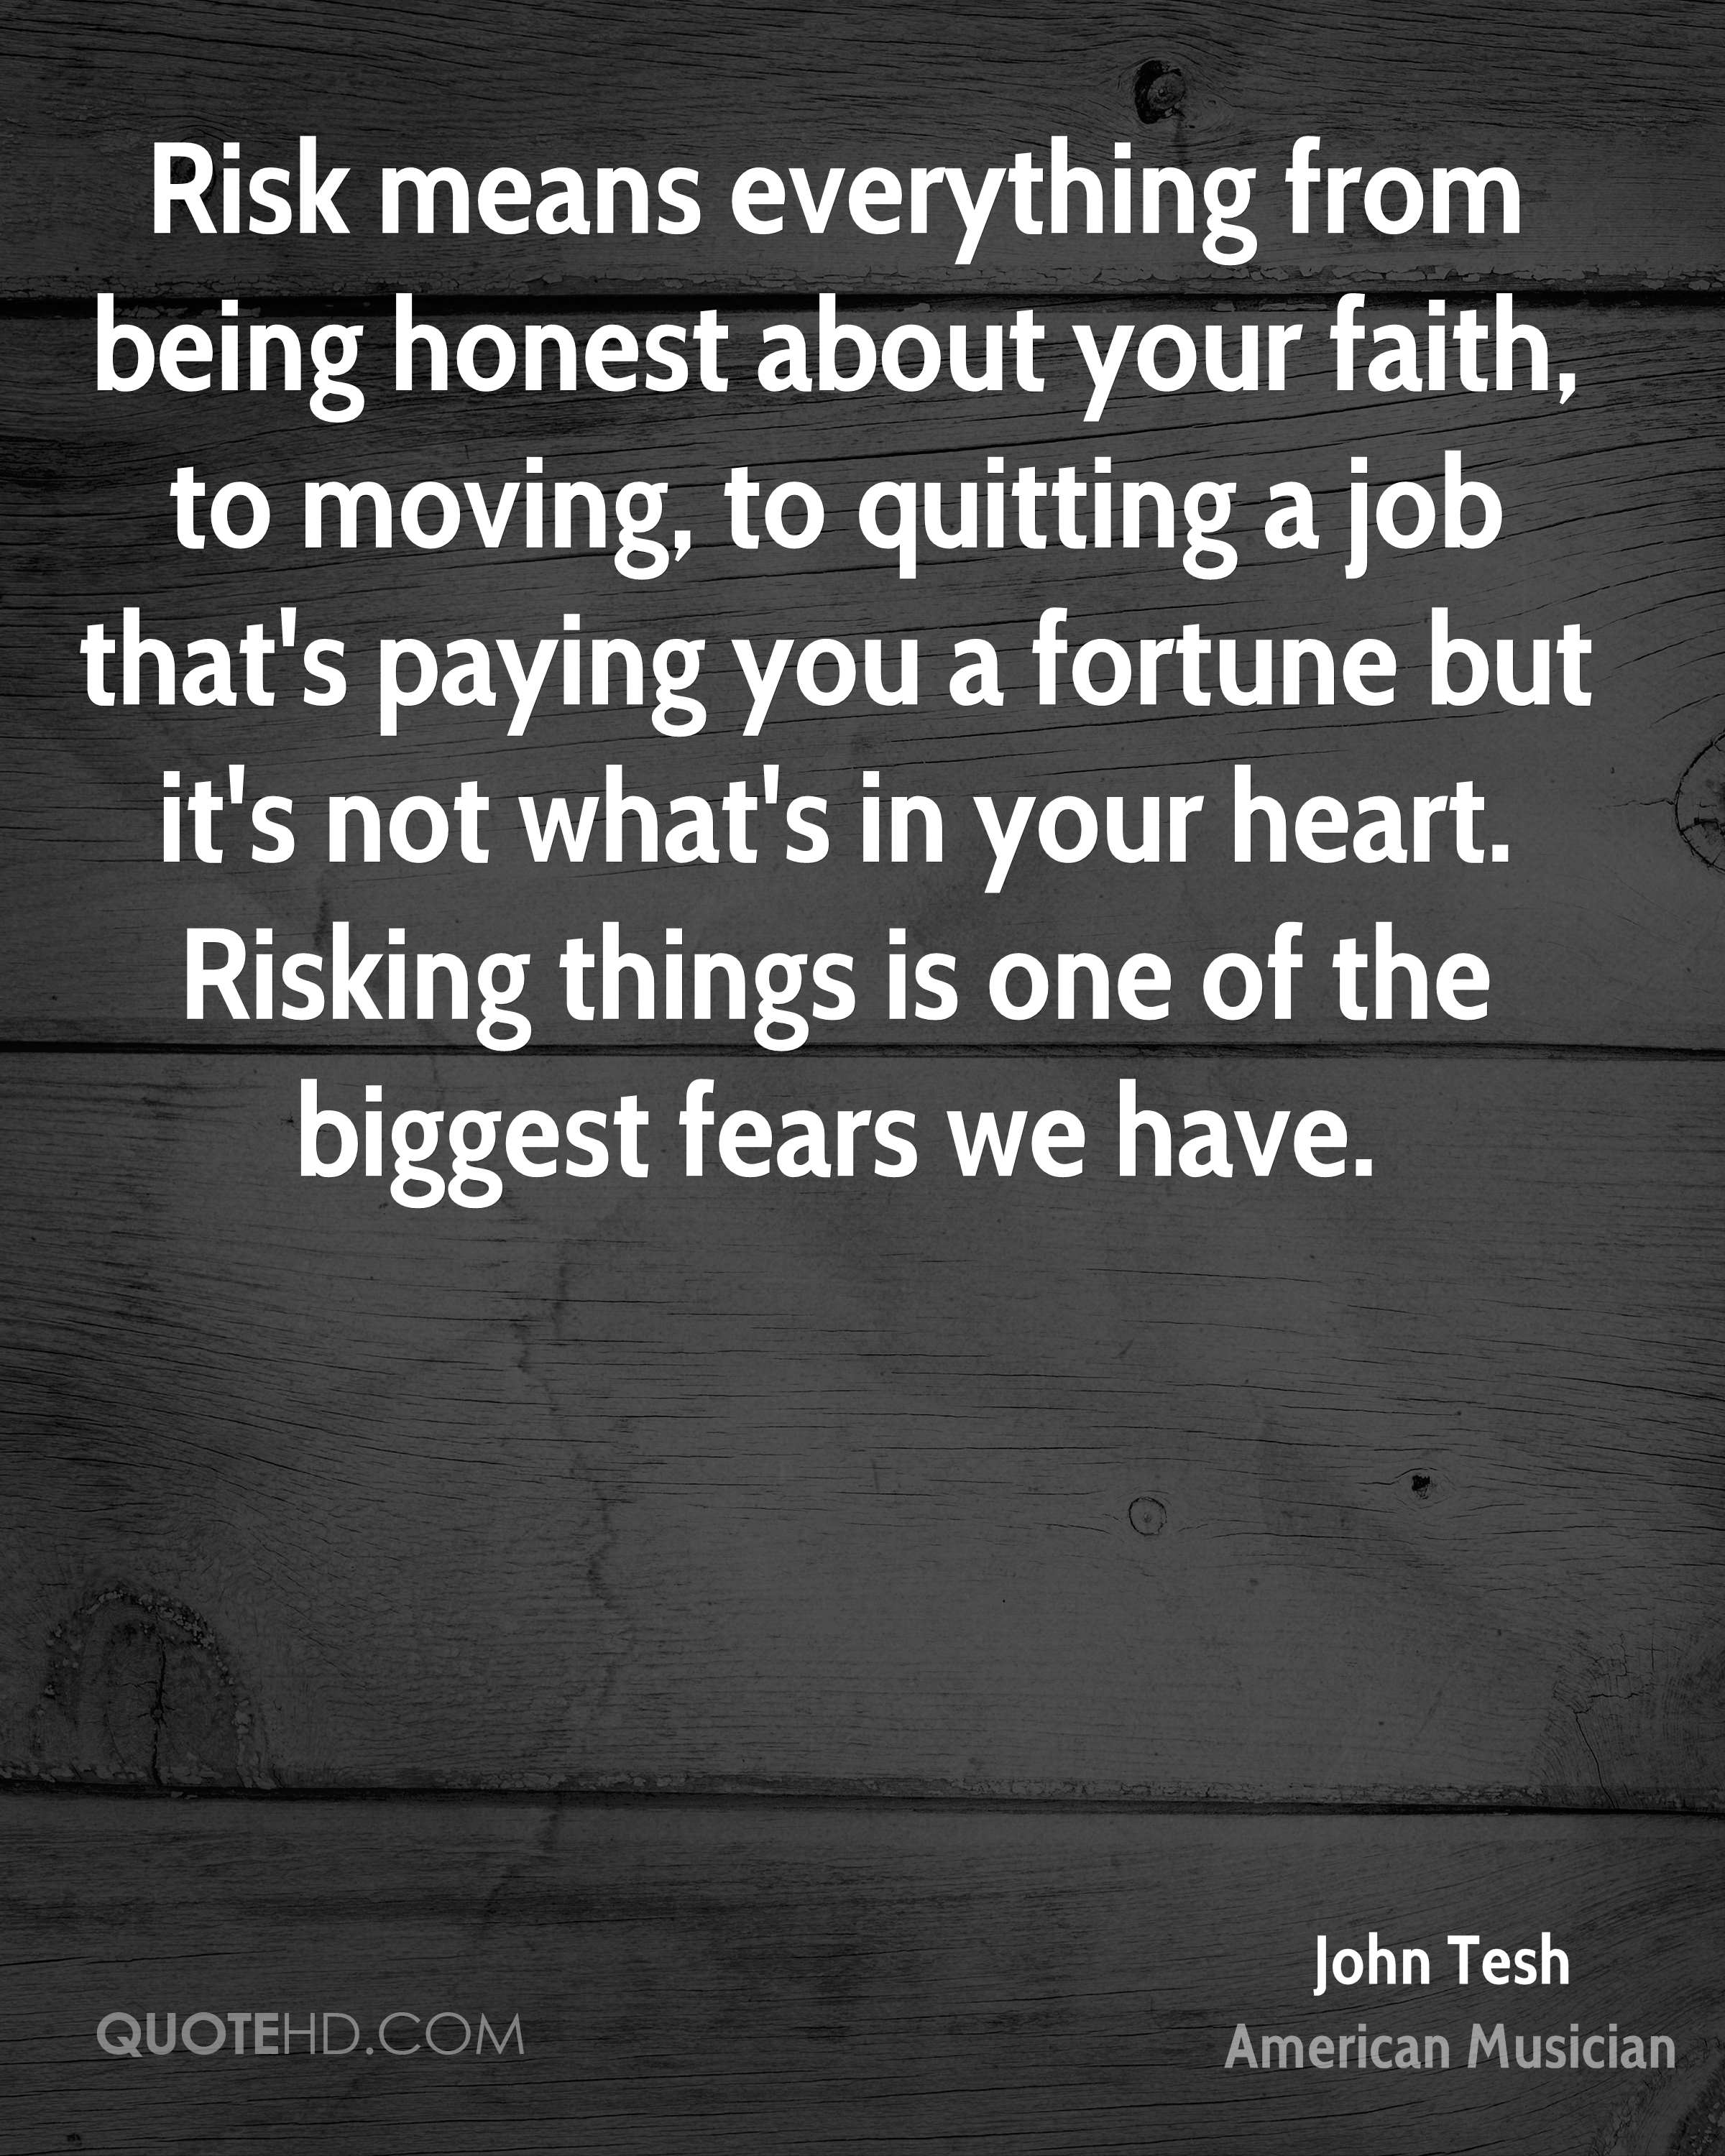 Risk means everything from being honest about your faith, to moving, to quitting a job that's paying you a fortune but it's not what's in your heart. Risking things is one of the biggest fears we have.